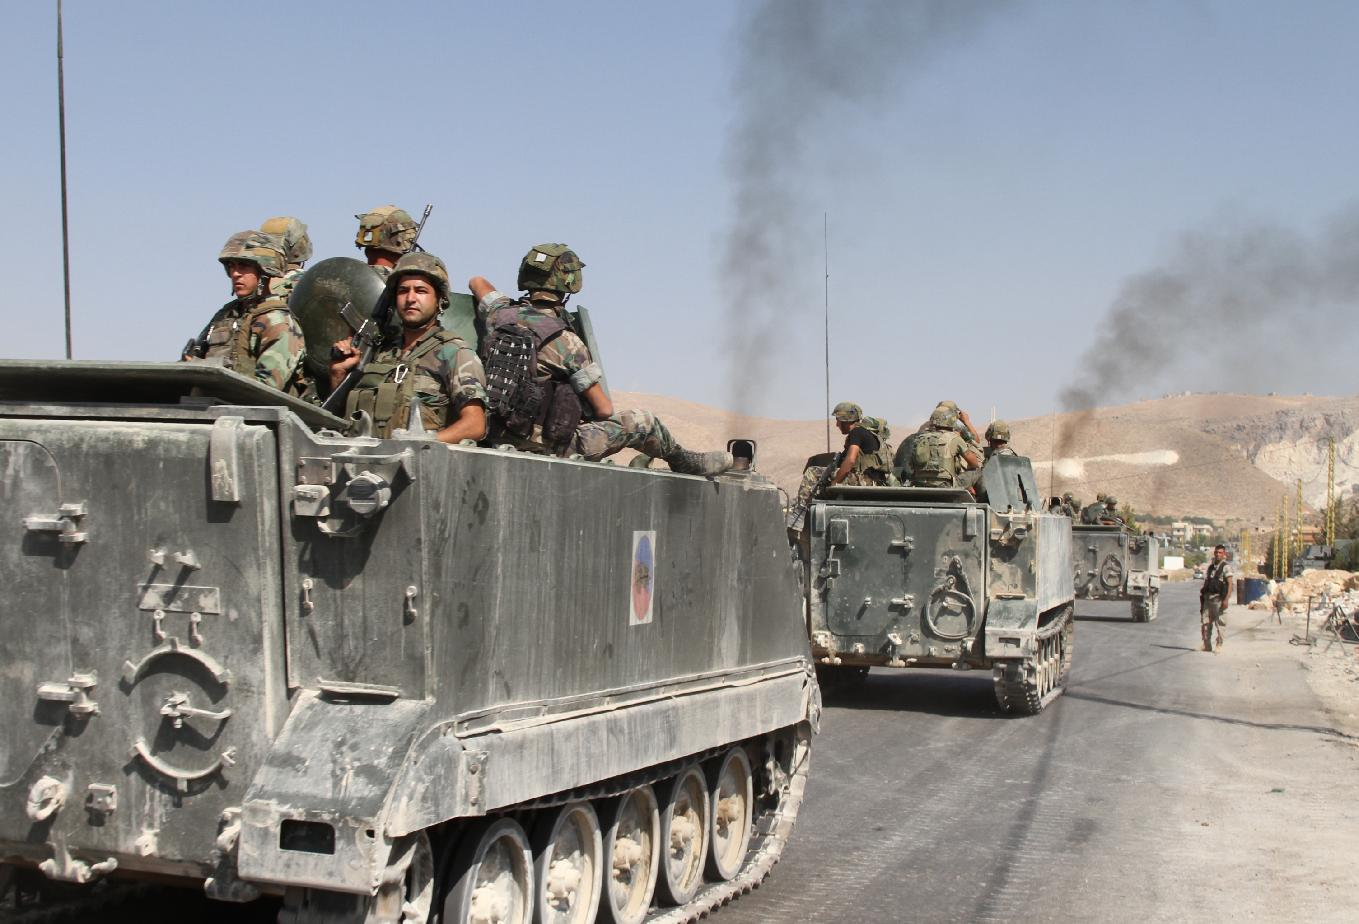 Lebanese troops deploy in the eastern town of Arsal near the Syrian border on August 28, 2014